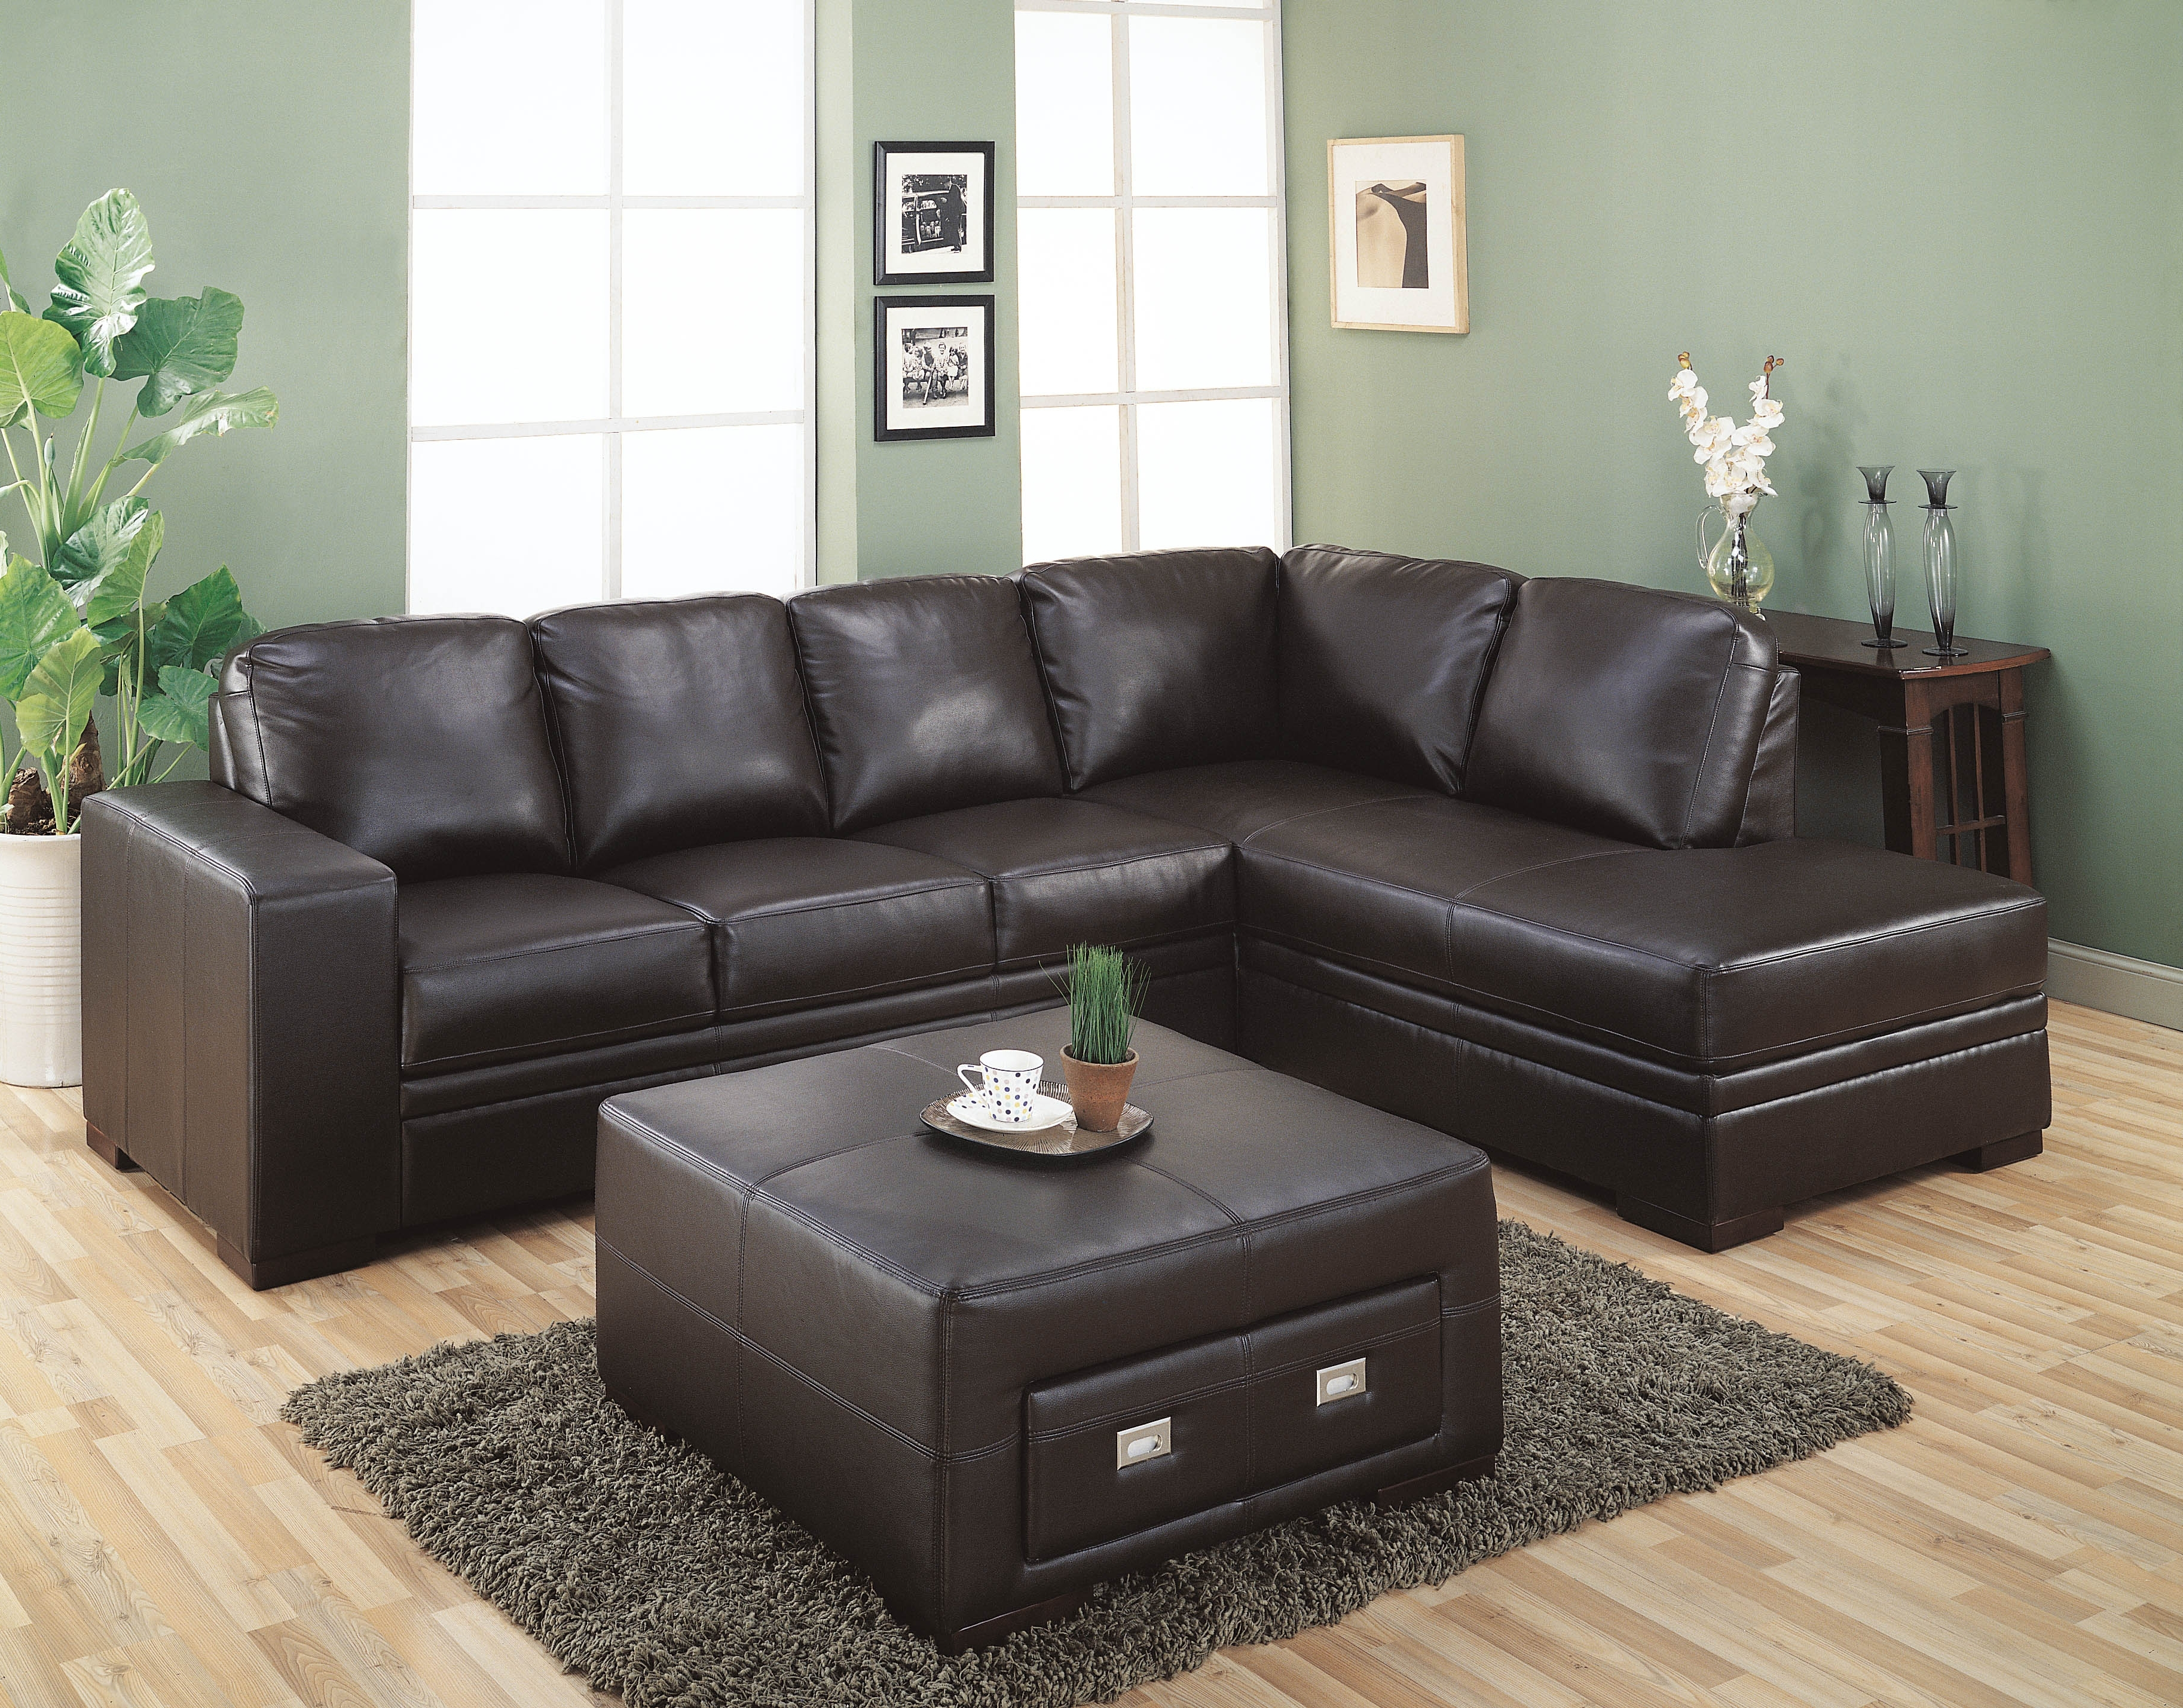 Carehouse In Chocolate Brown Sectional Sofas (View 10 of 15)